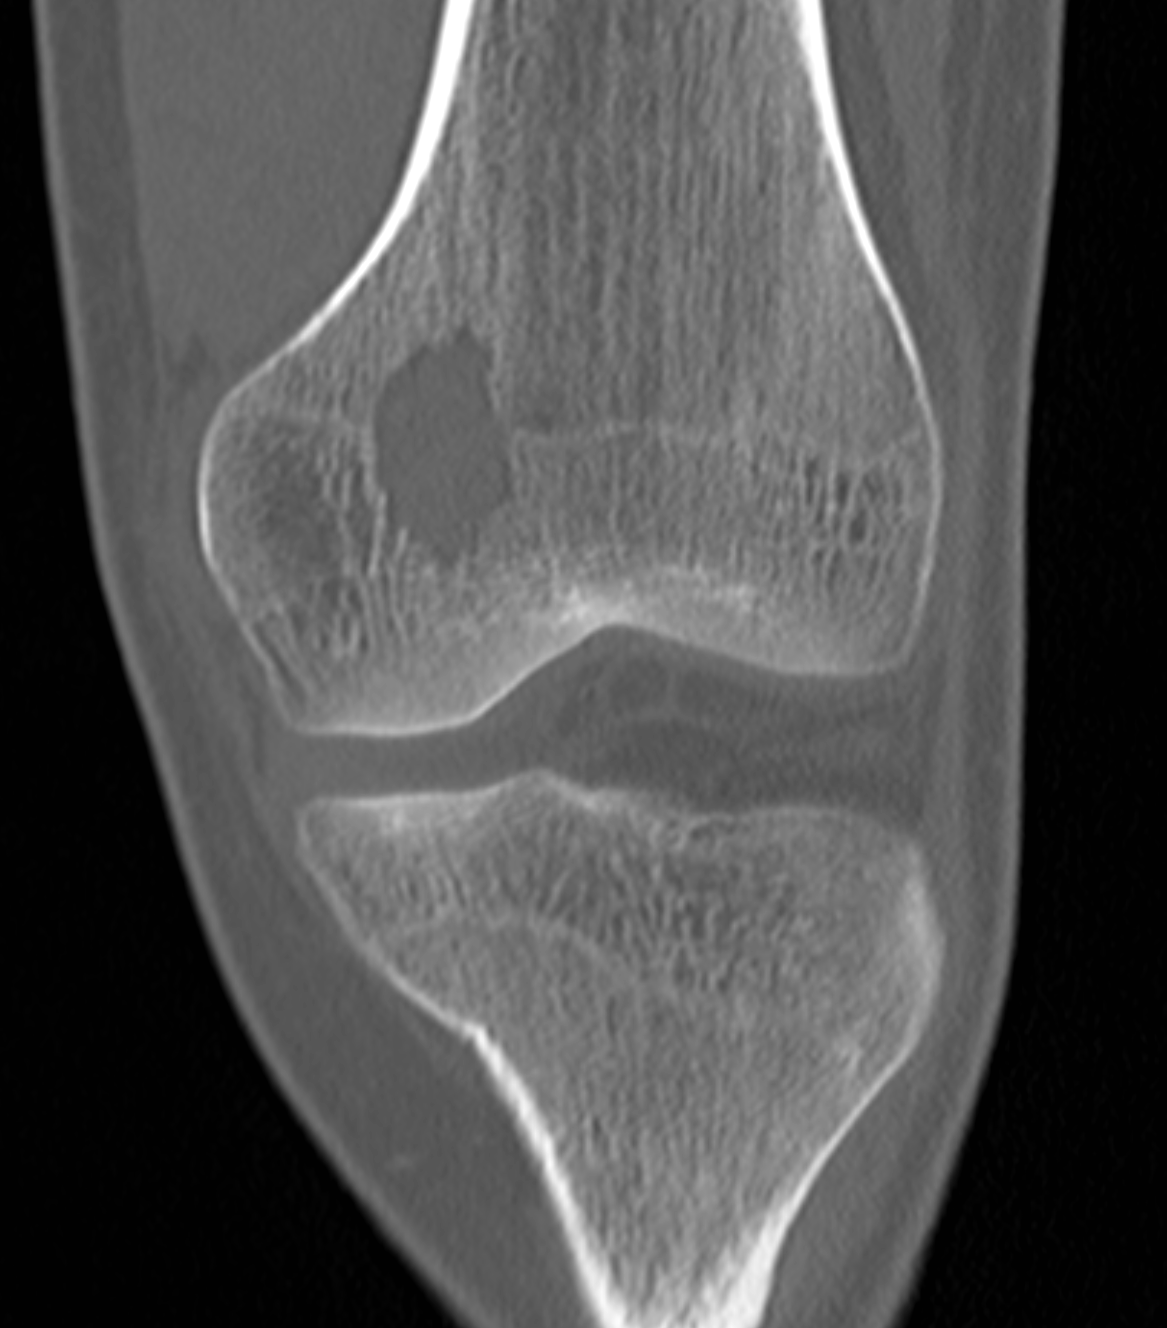 Coronal CT demonstrates a lytic lesion within the physis/epiphysis of the distal femur.